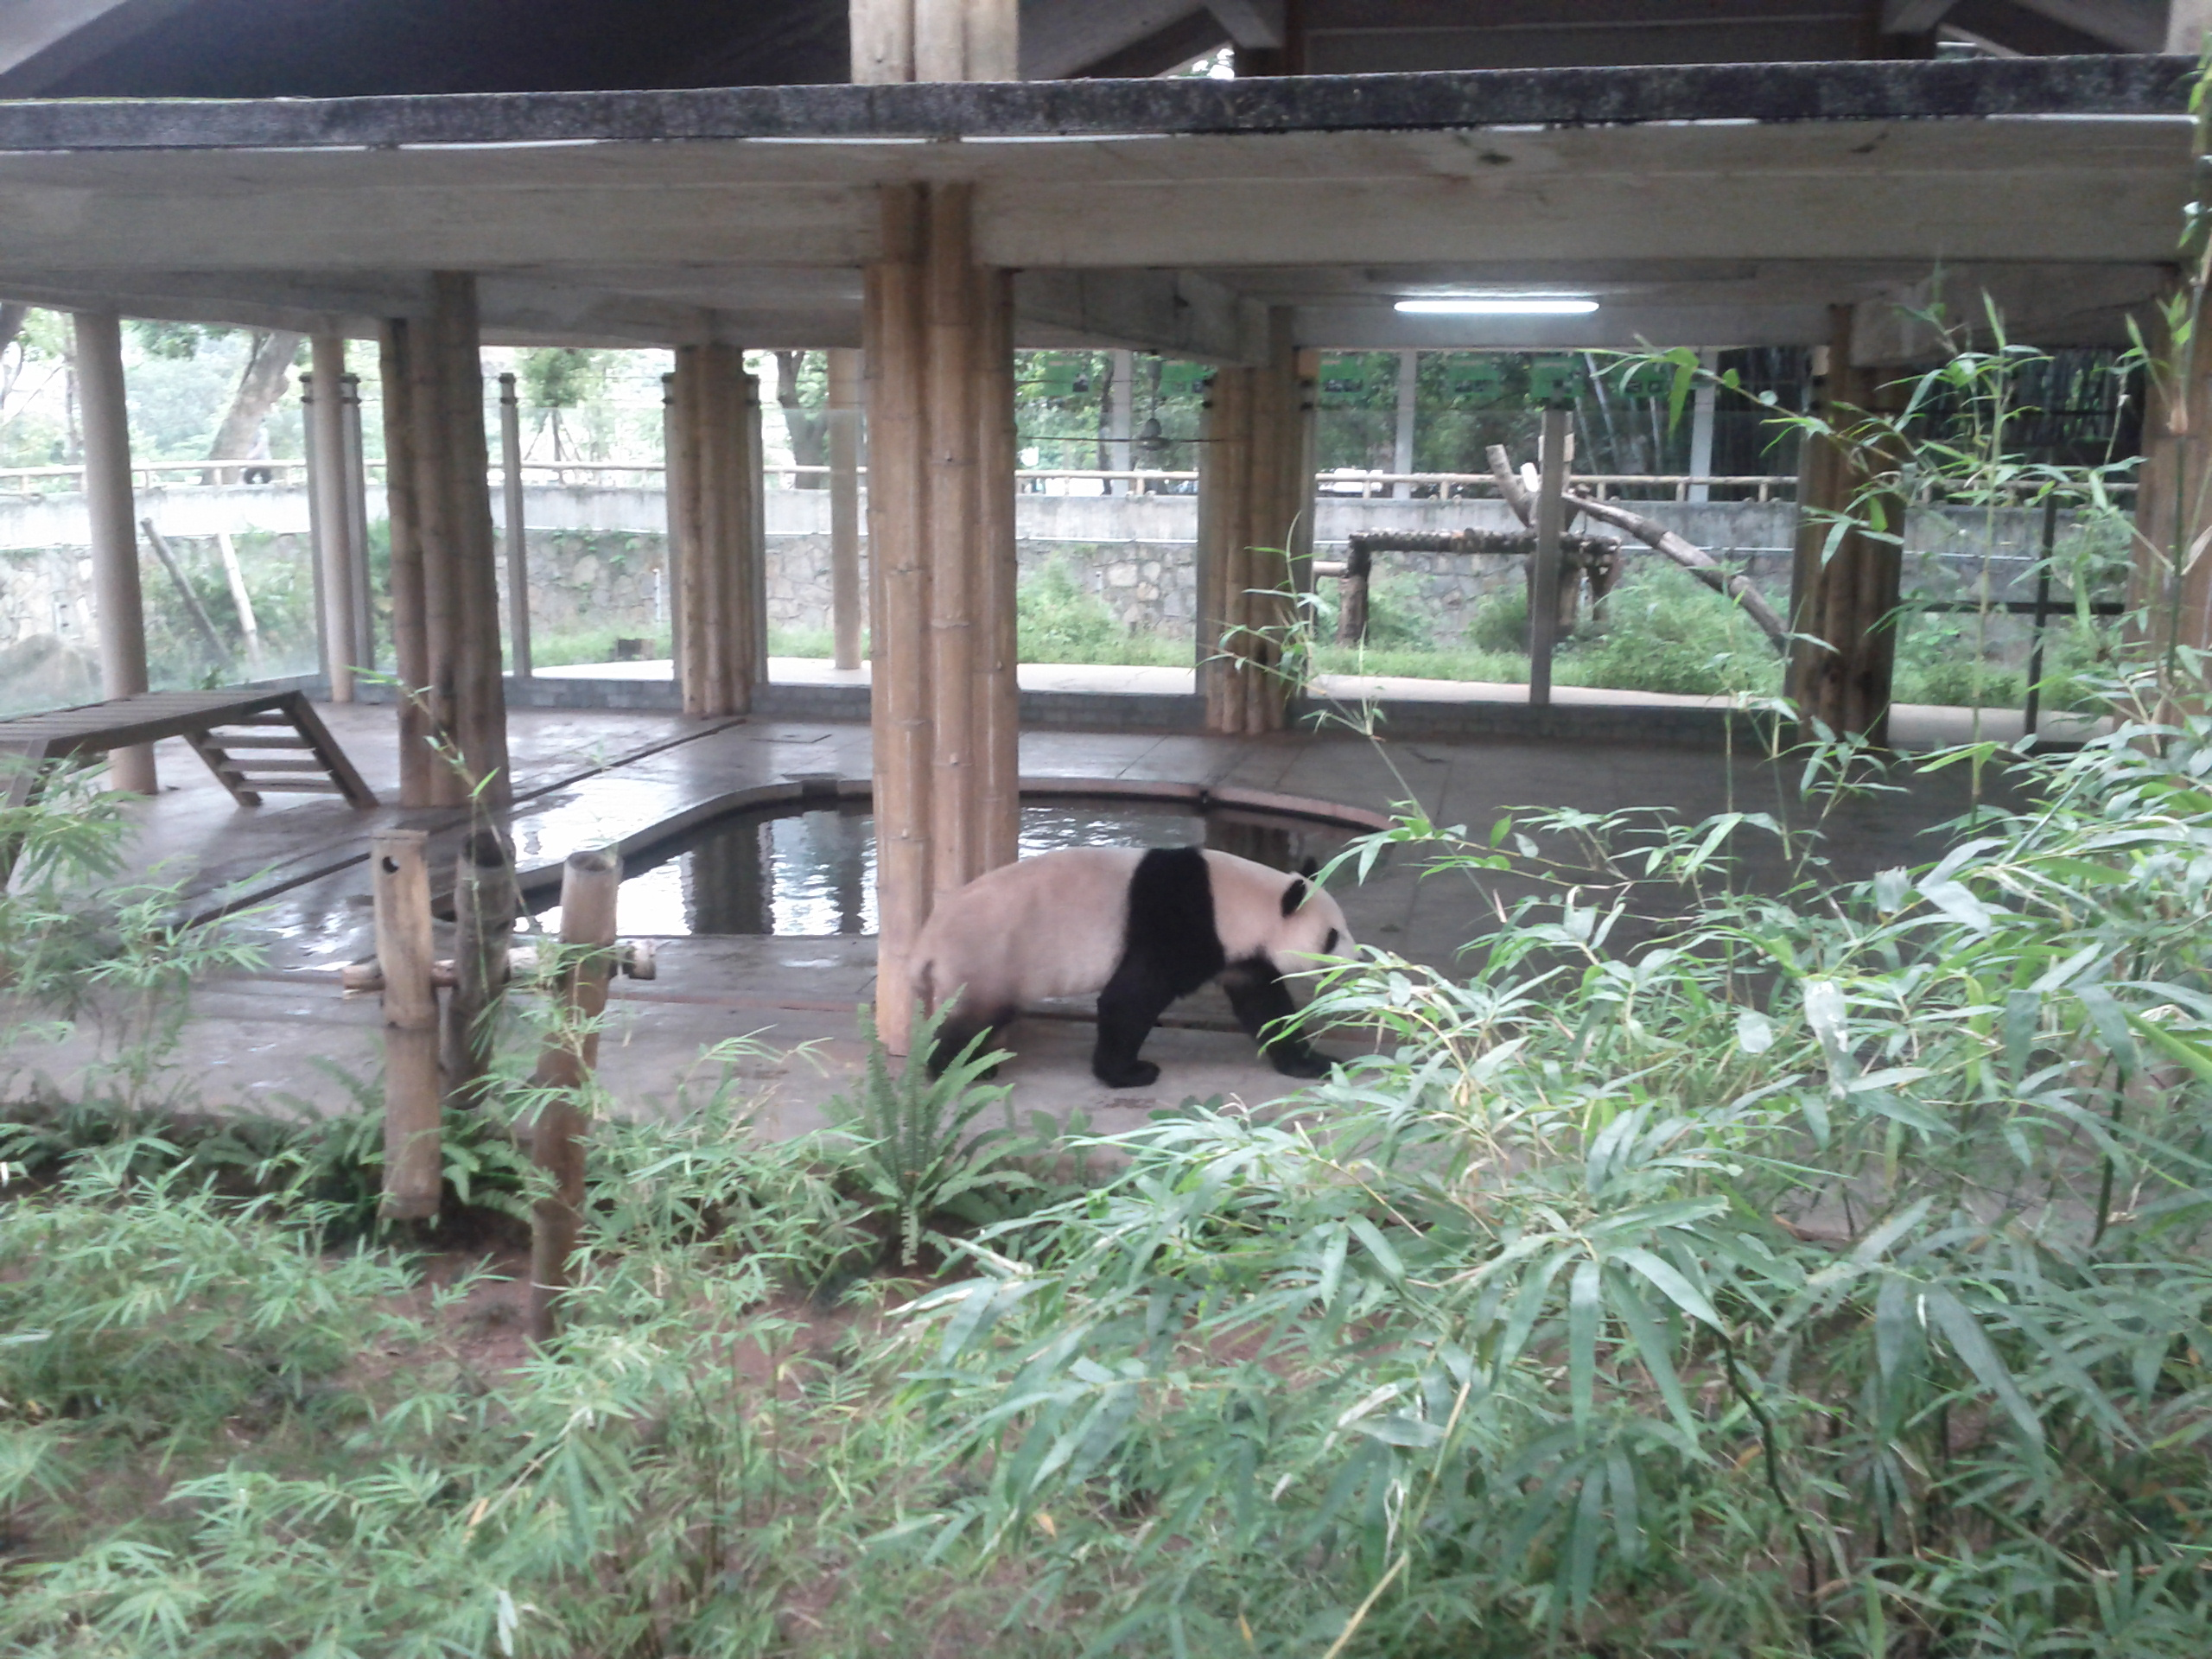 Panda at Guangzhou zoo